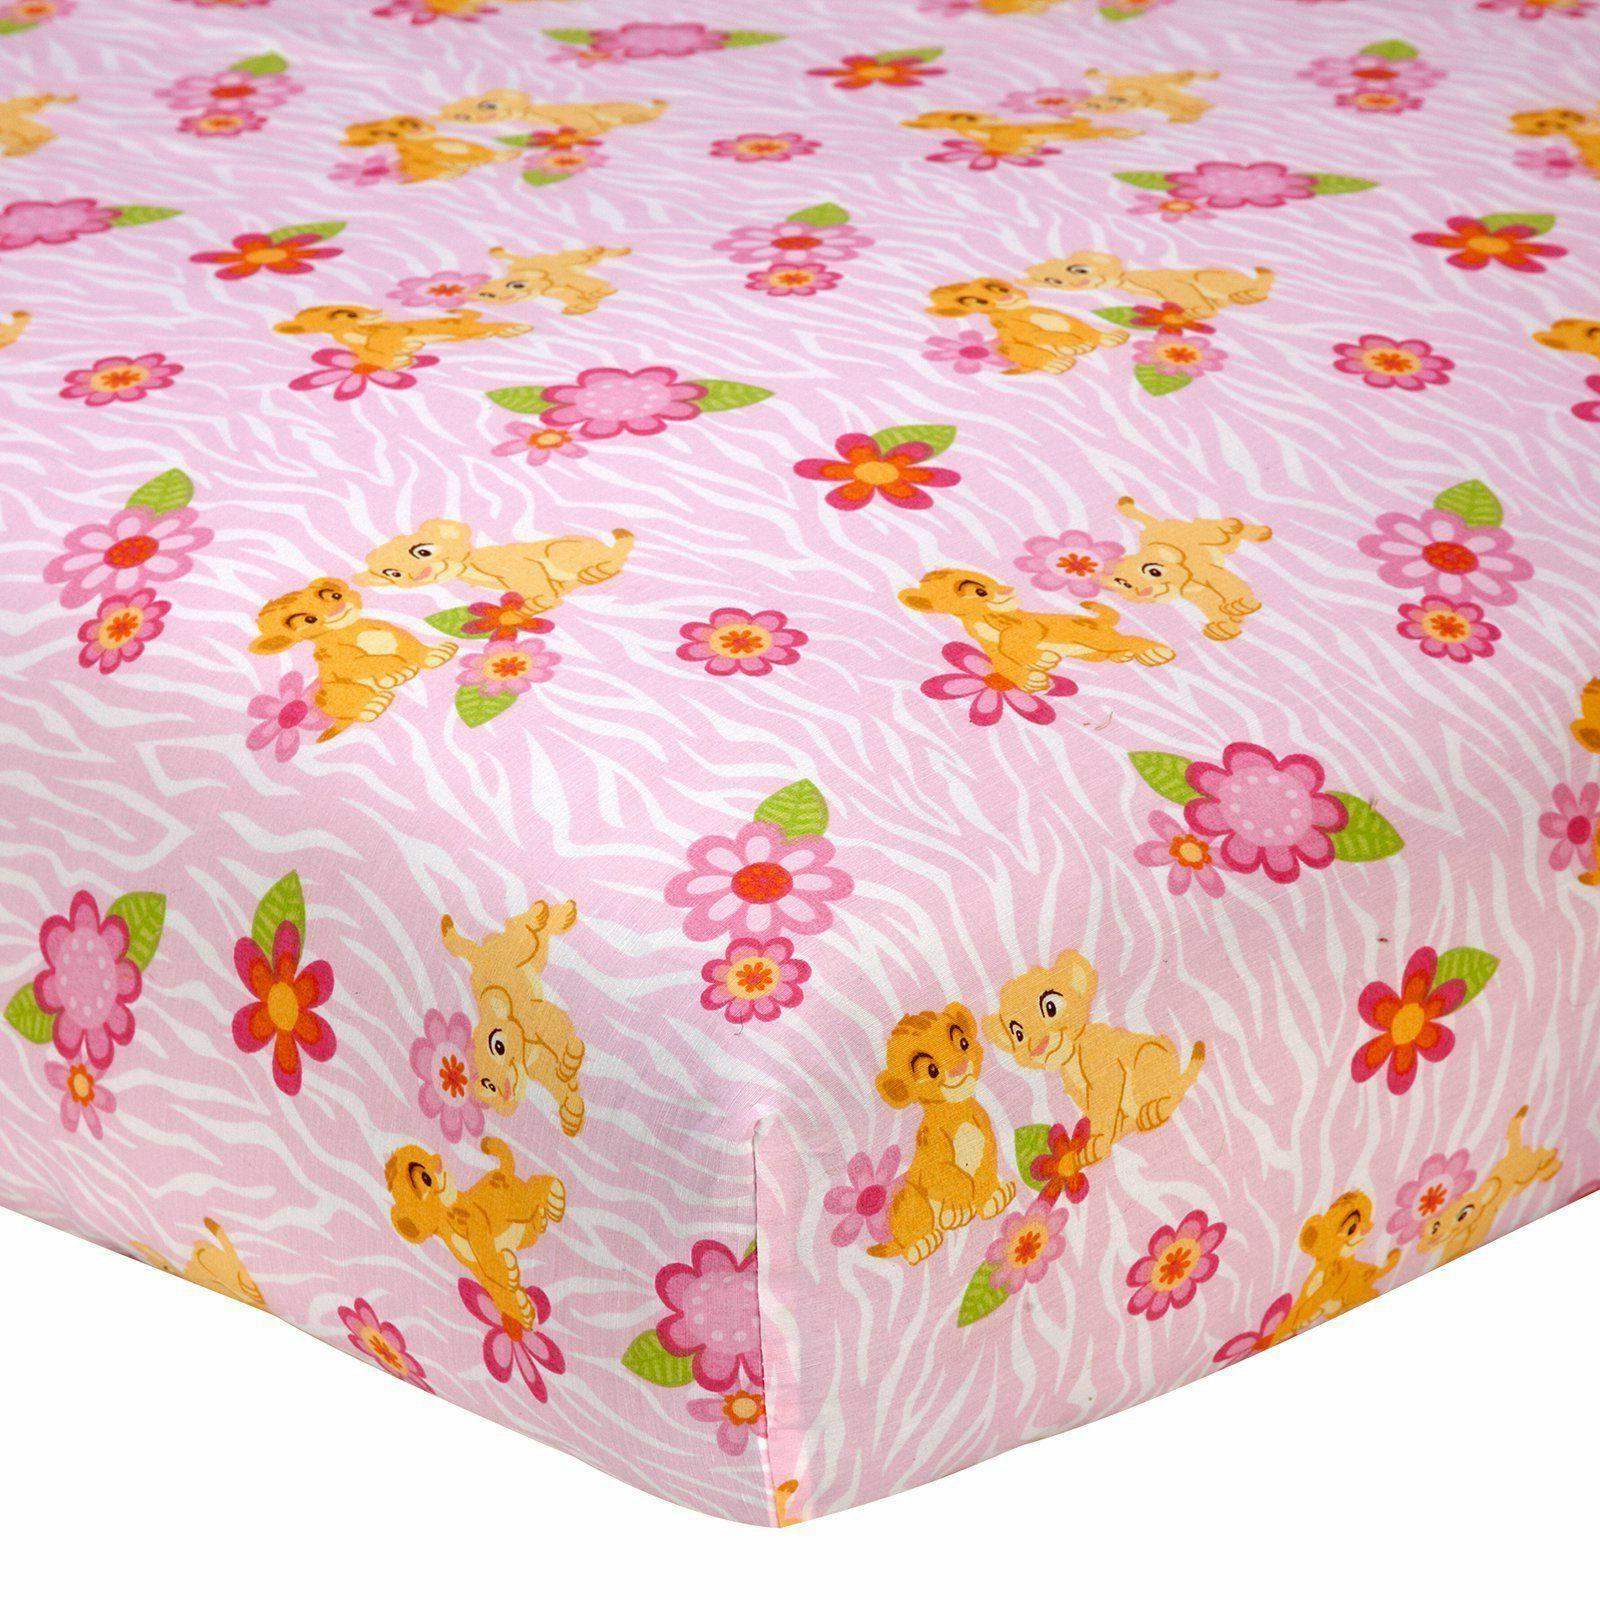 New Disney Baby Nala's Jungle Fitted Crib or Toddler Sheet P